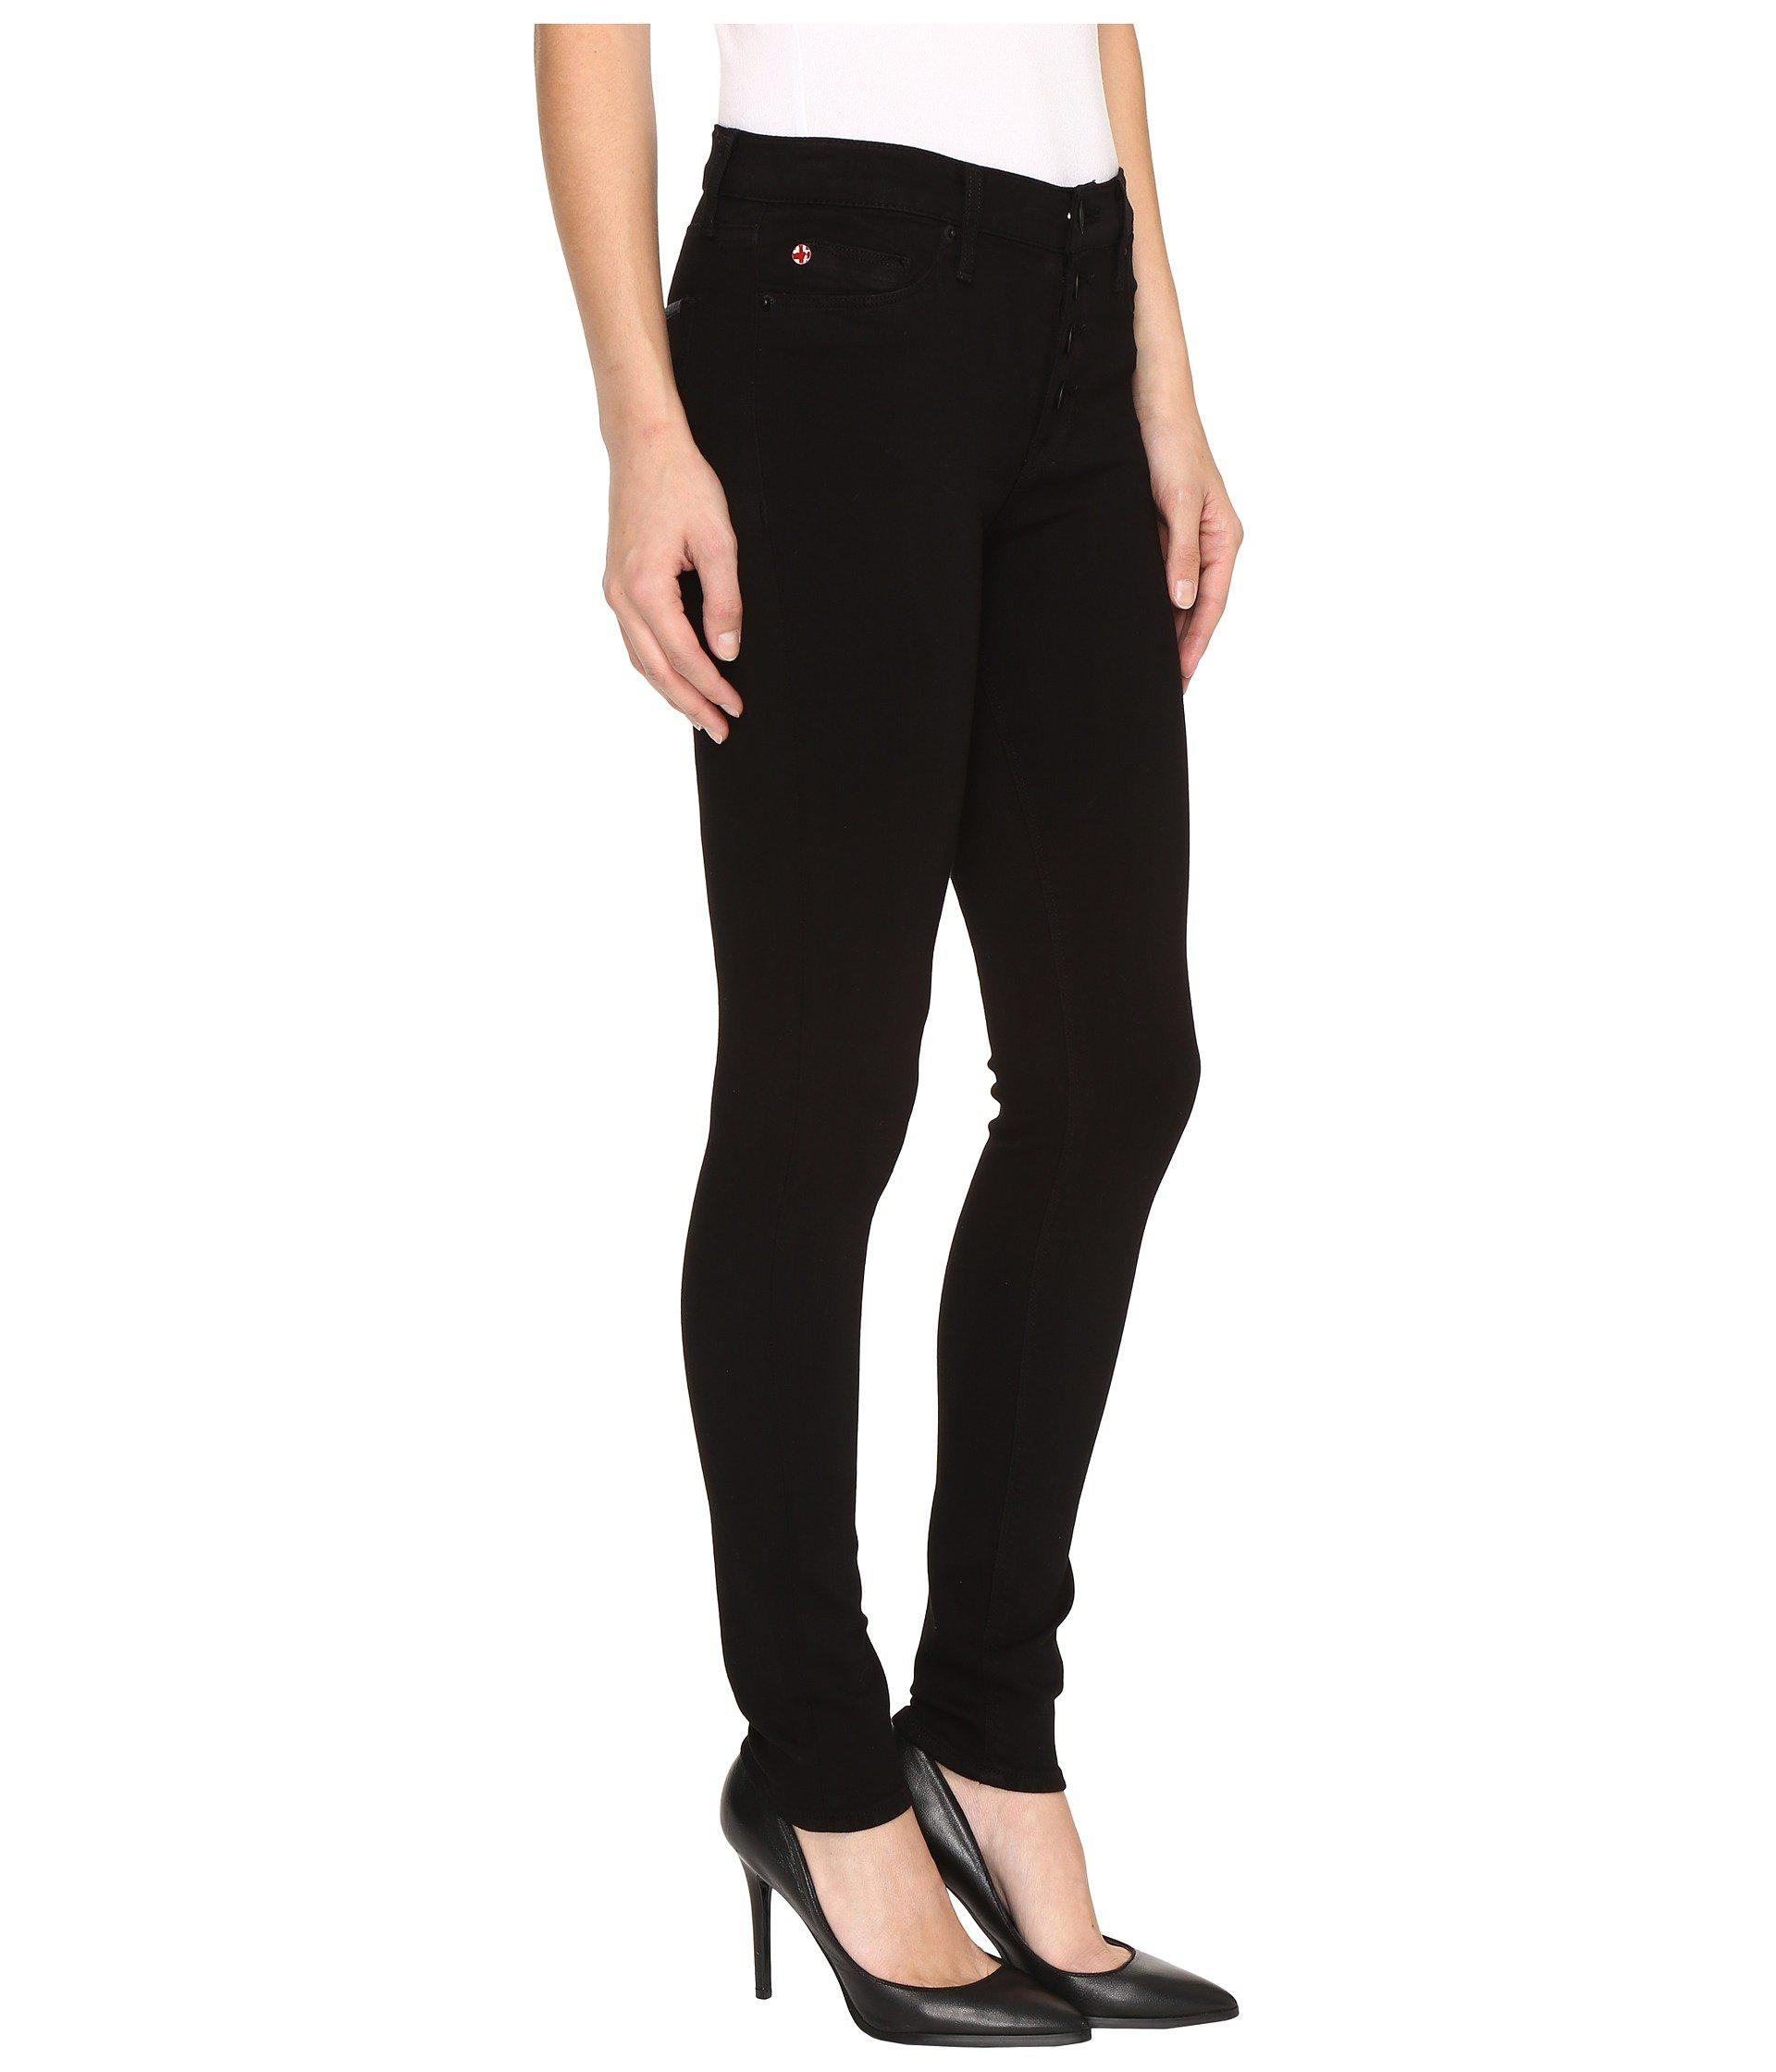 9f9a13b7c41 Gallery. Previously sold at: 6PM · Women's Black Jeans Women's Black Skinny  ...